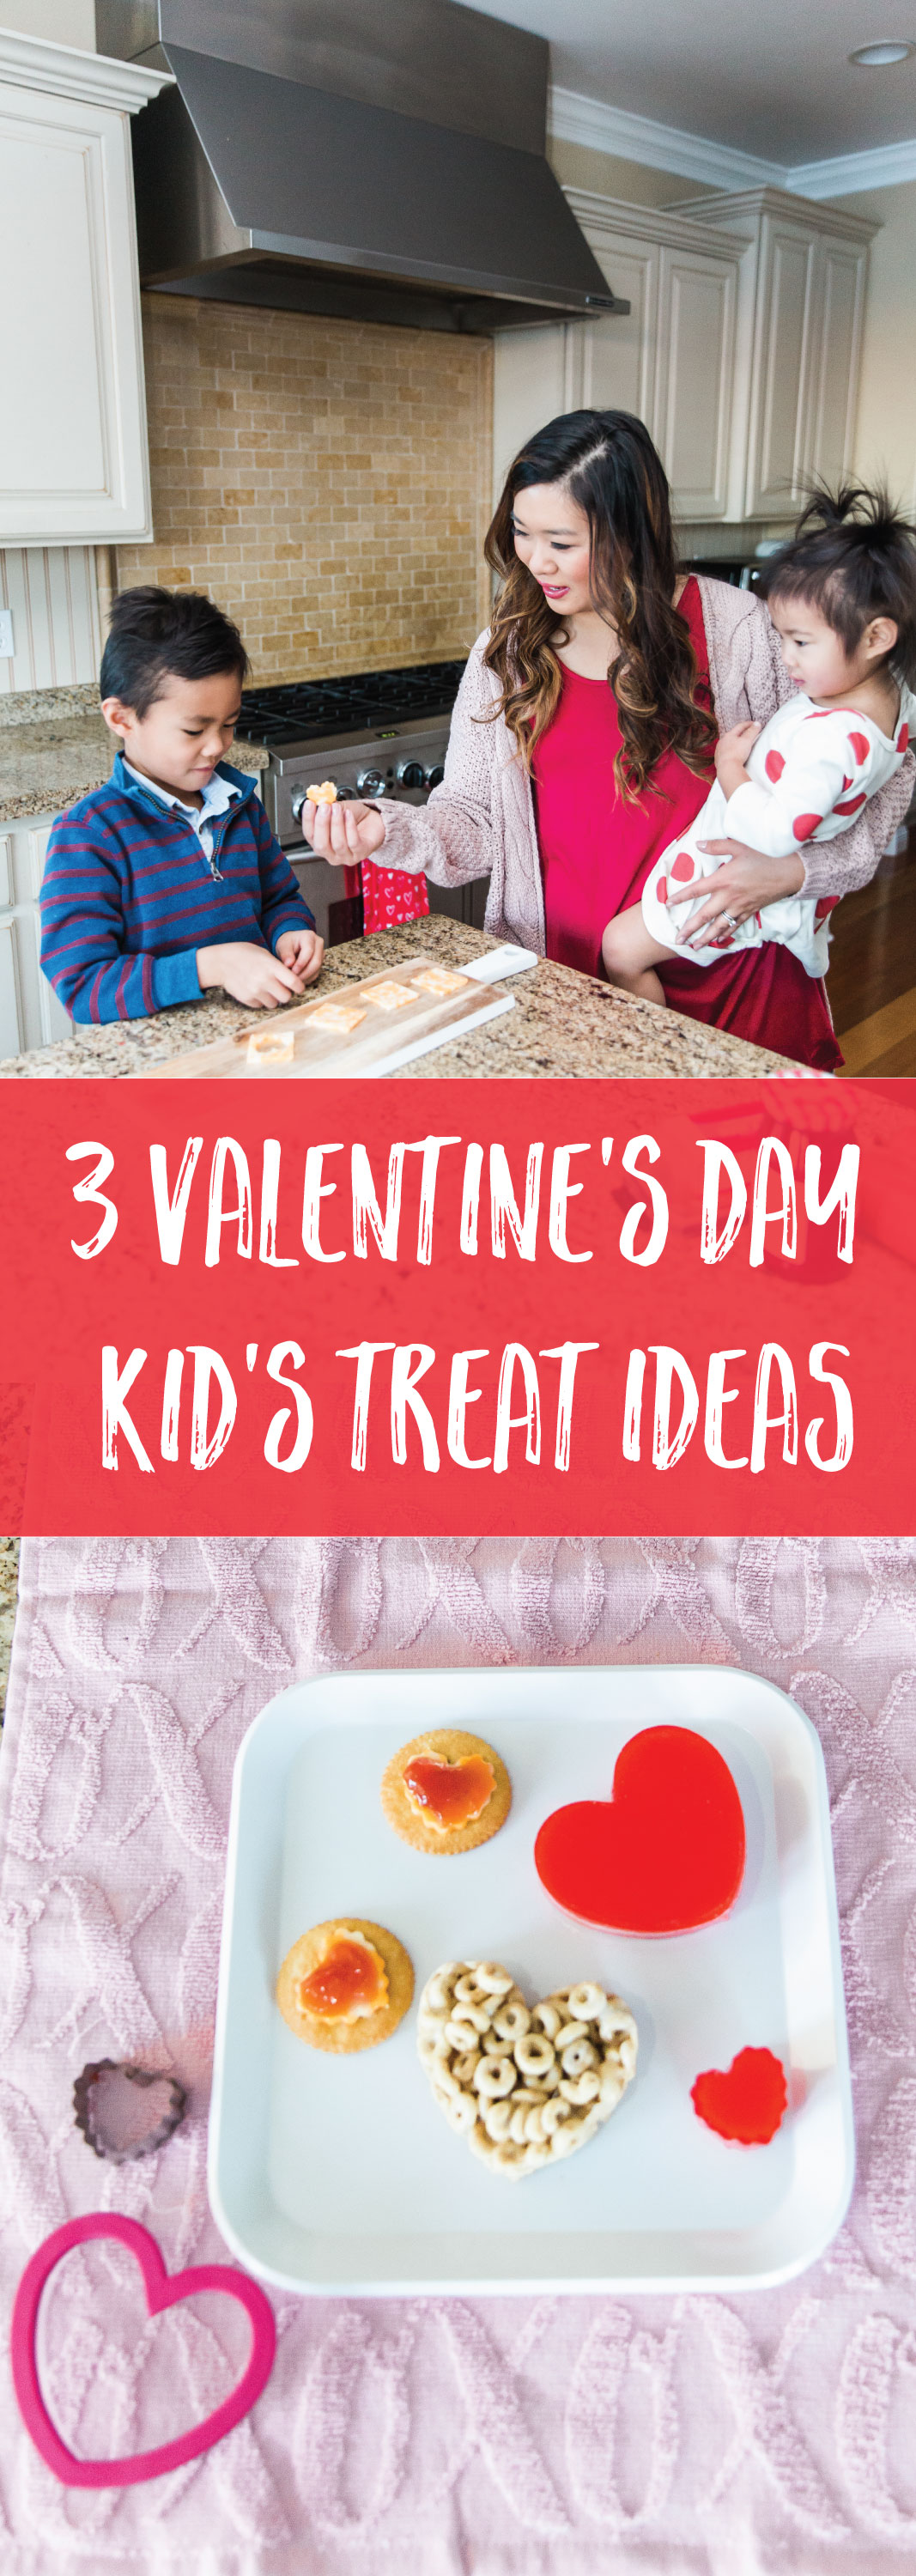 3-Valentine's-Day-Kid's-Treat-Ideas